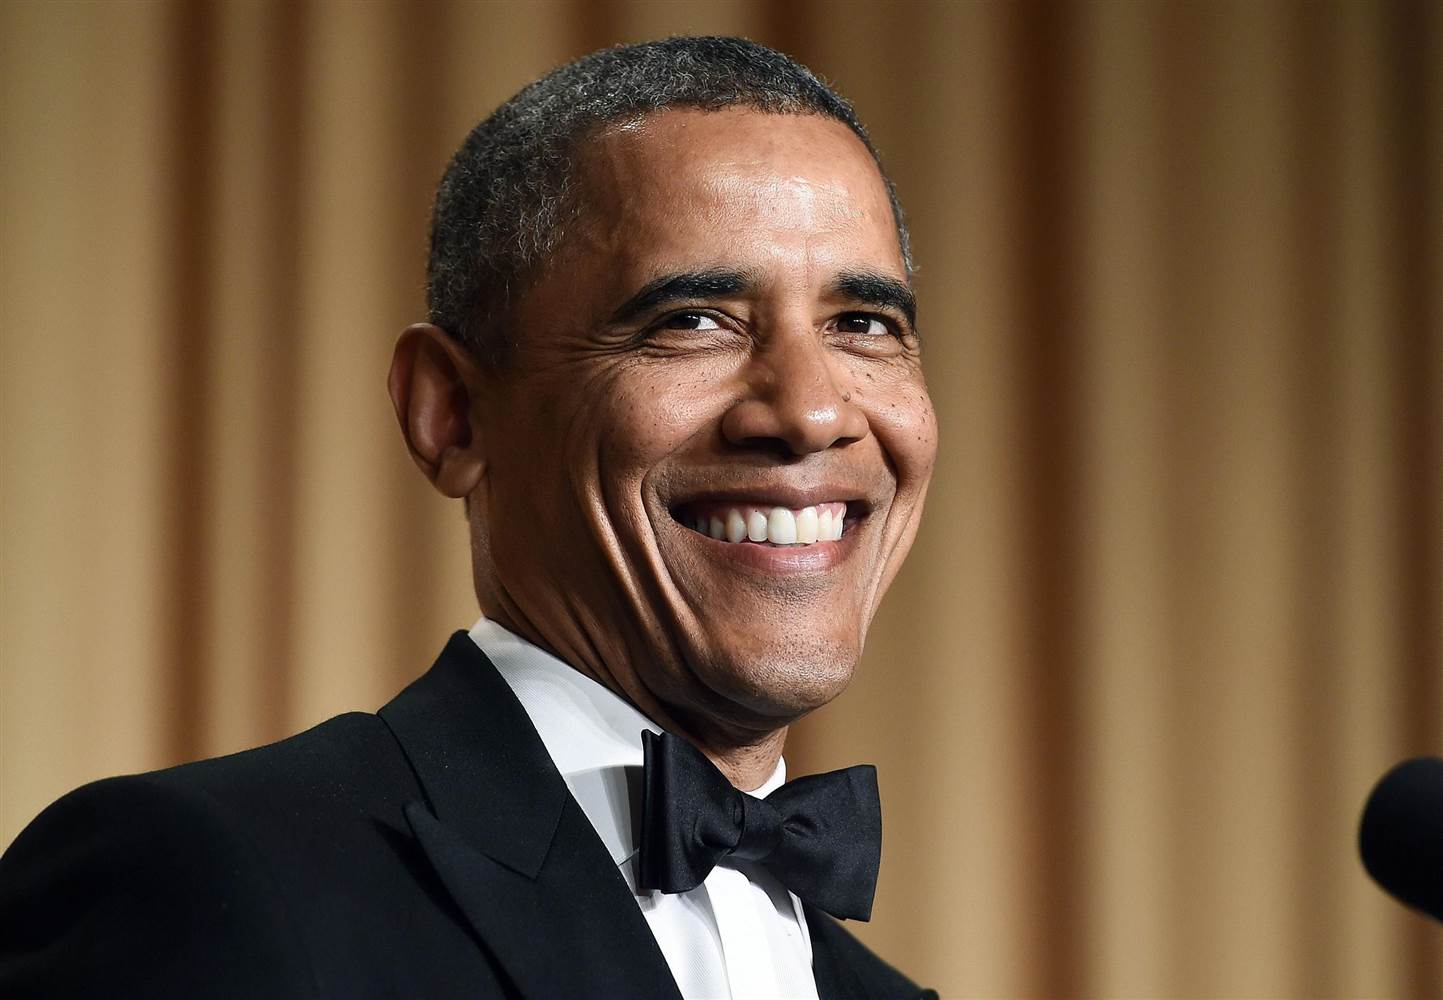 """Obama's """"Hometown"""" Playlist Includes JC Brooks, Chance The Rapper, Tom Waits and More"""